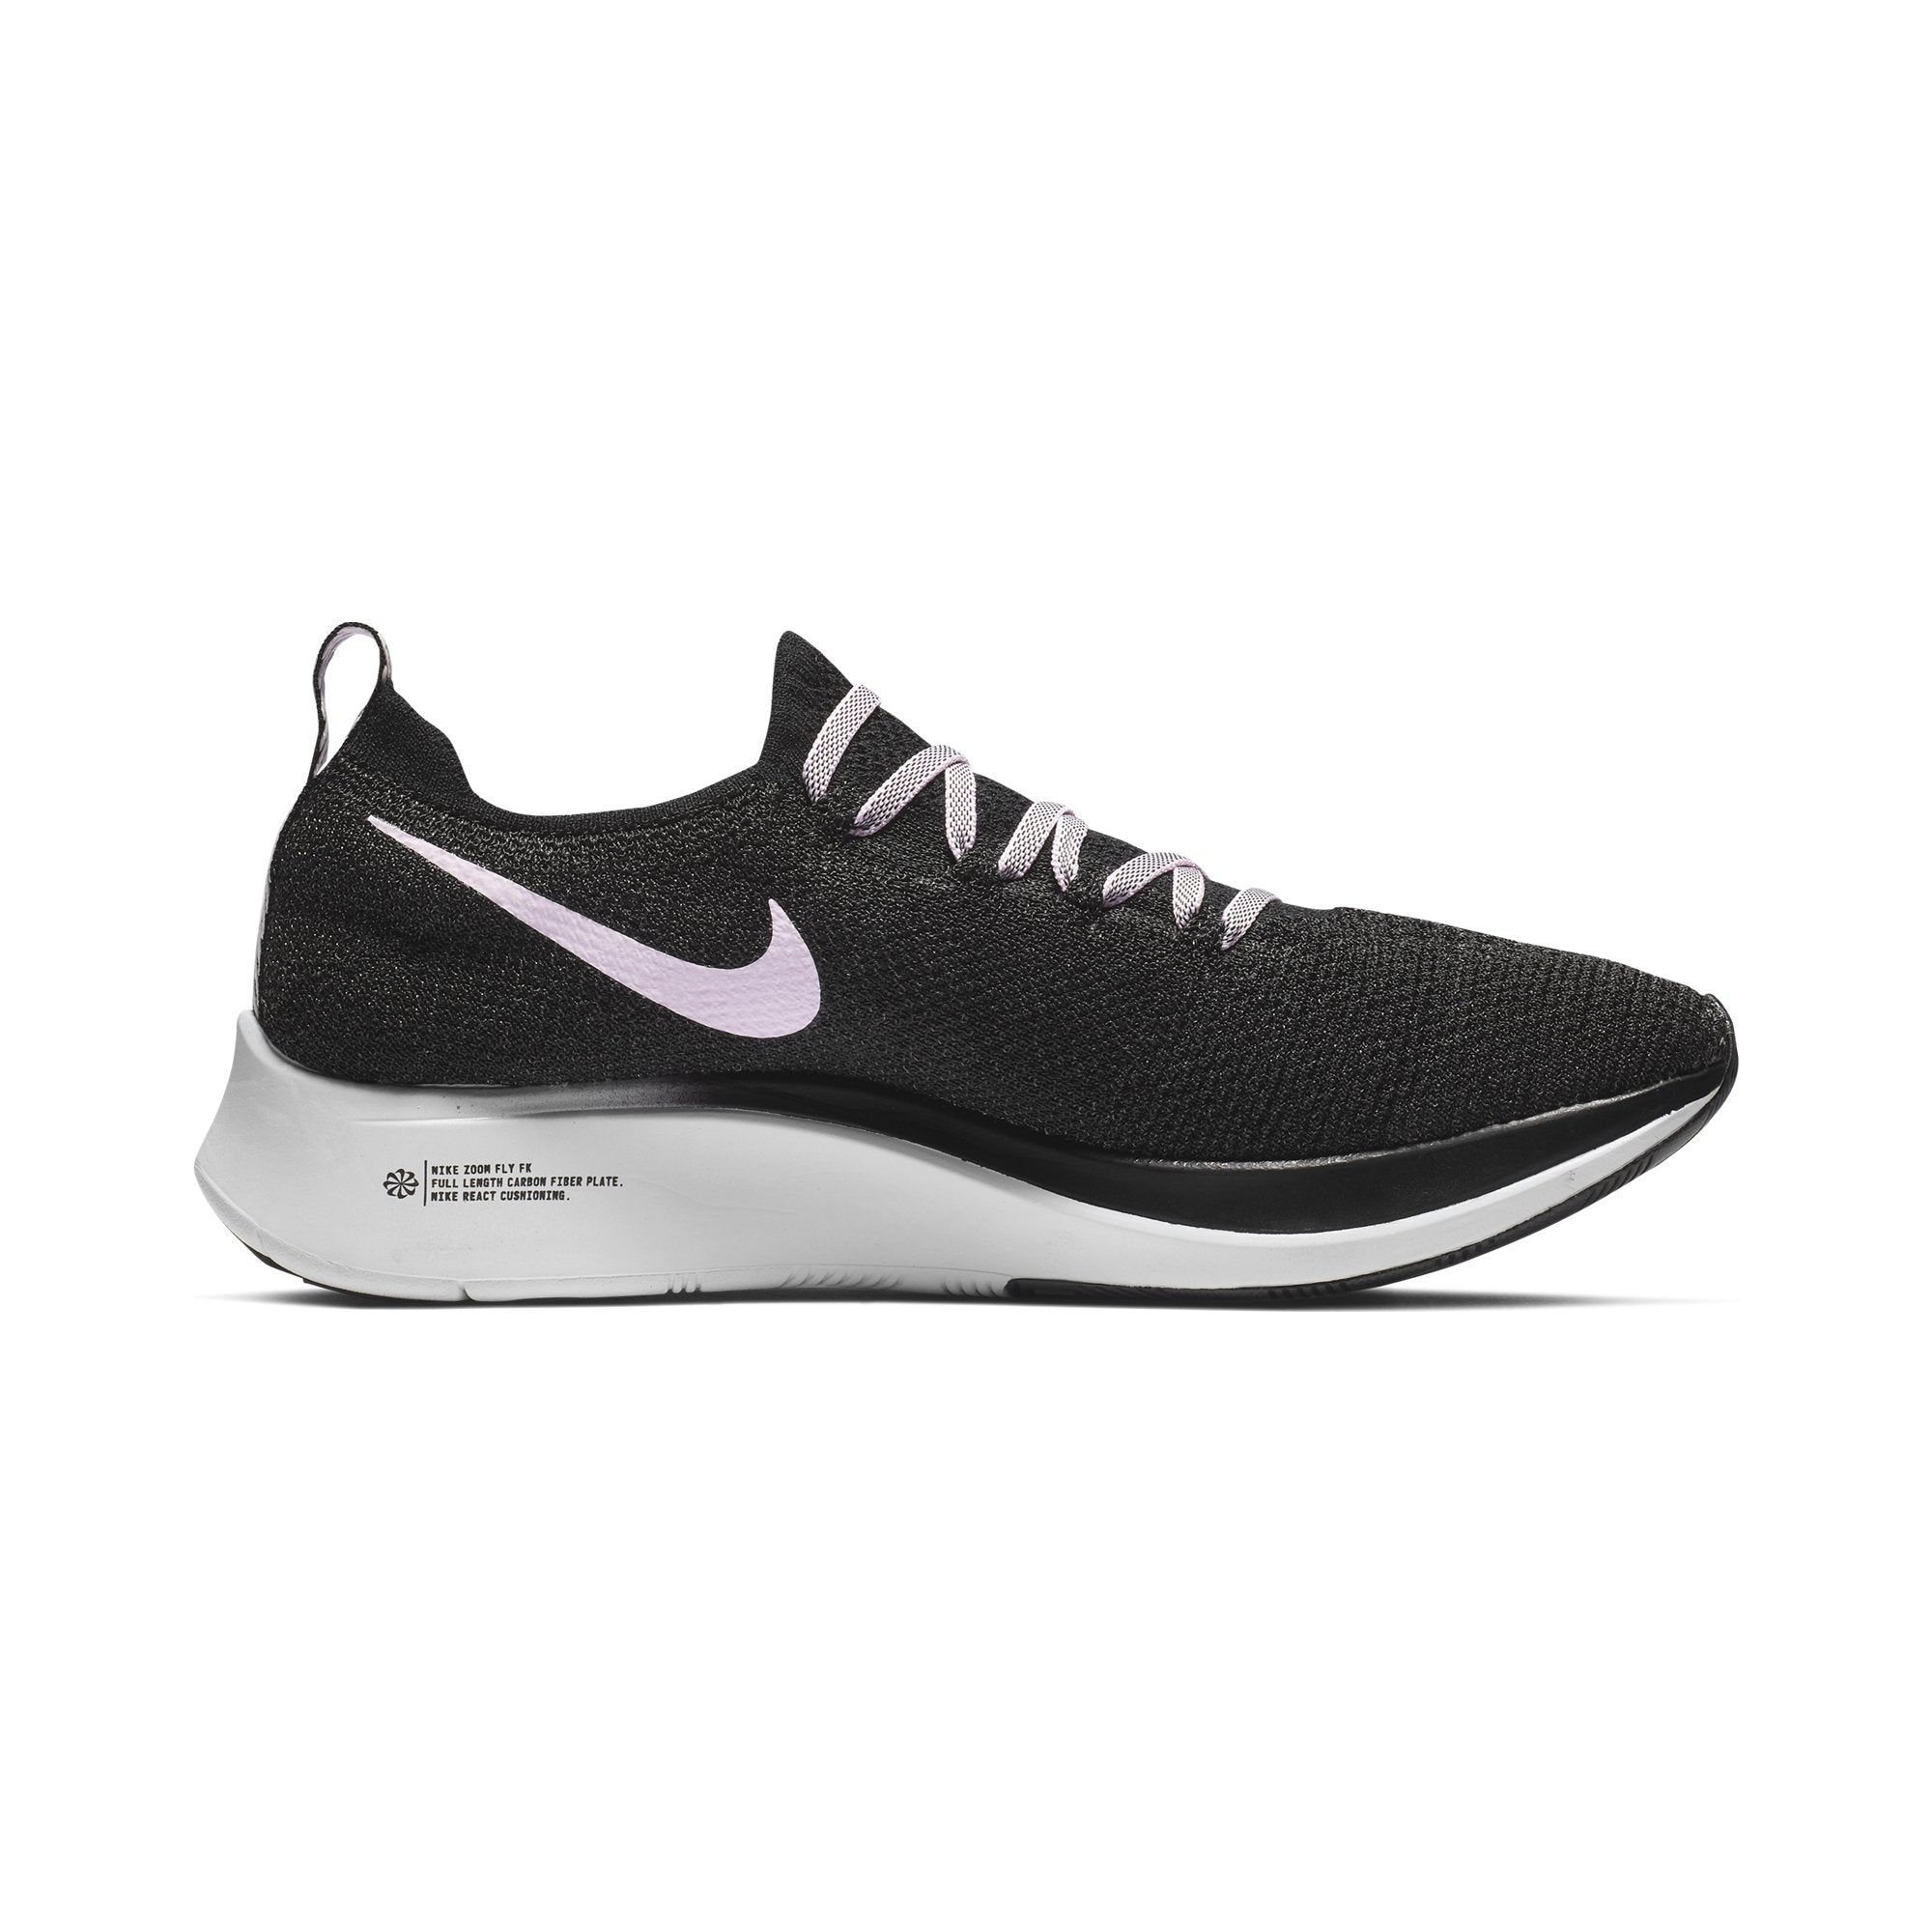 9d93ef30d0d Buy Nike Women s Zoom Fly Flyknit Running Shoes